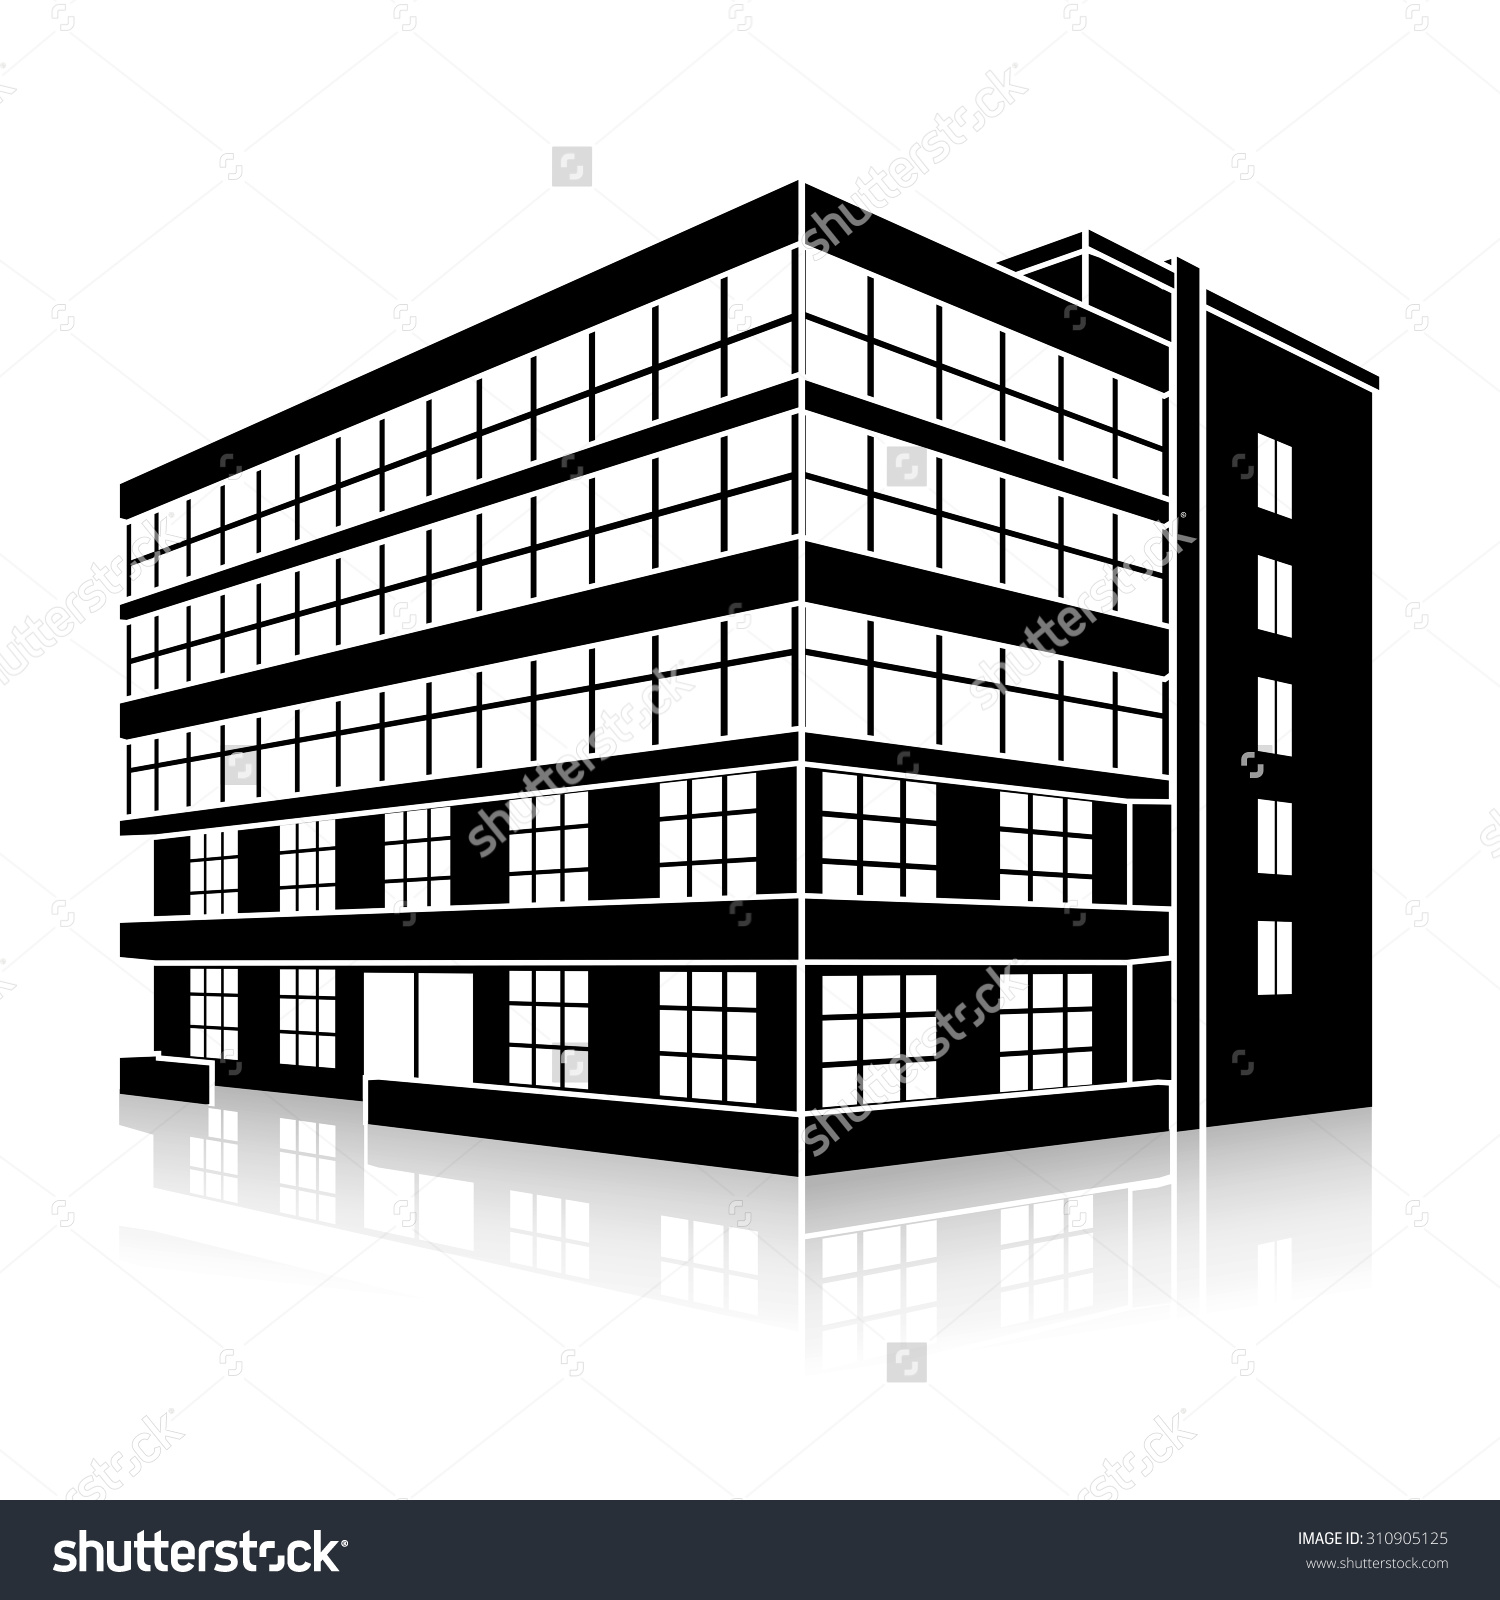 644 Office Building free clipart.